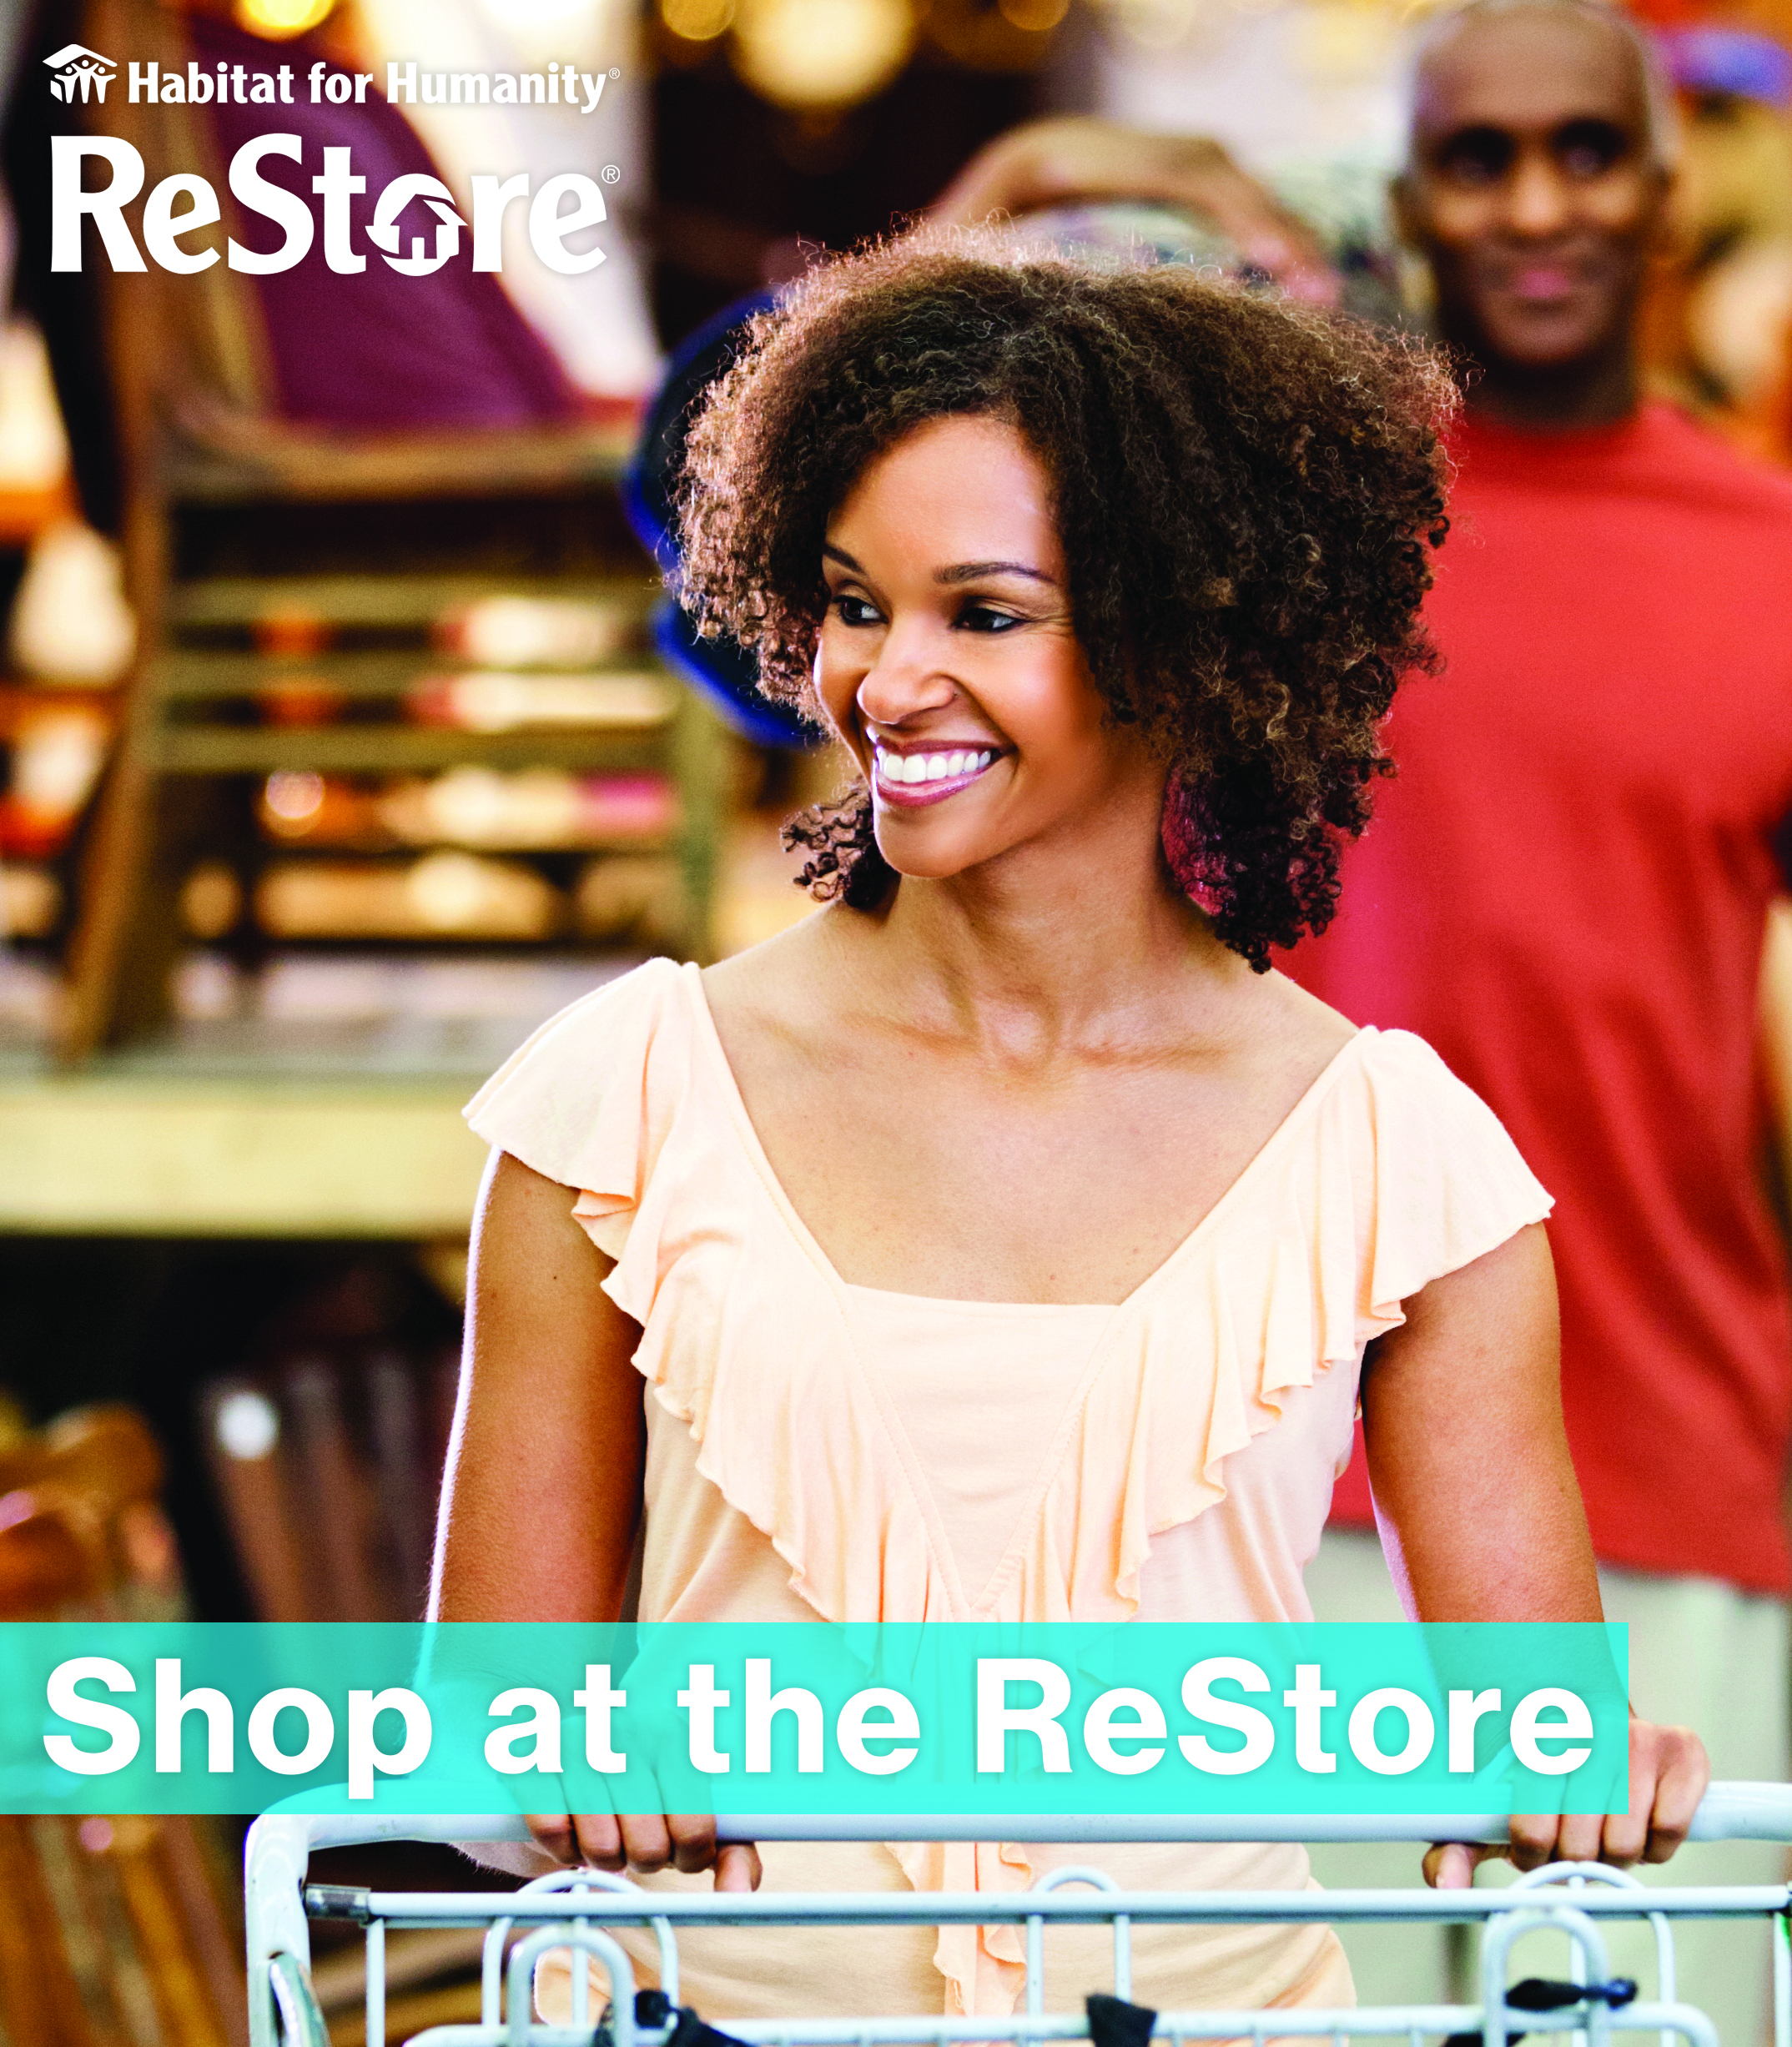 ReStore Website Home Page - Shop.jpg